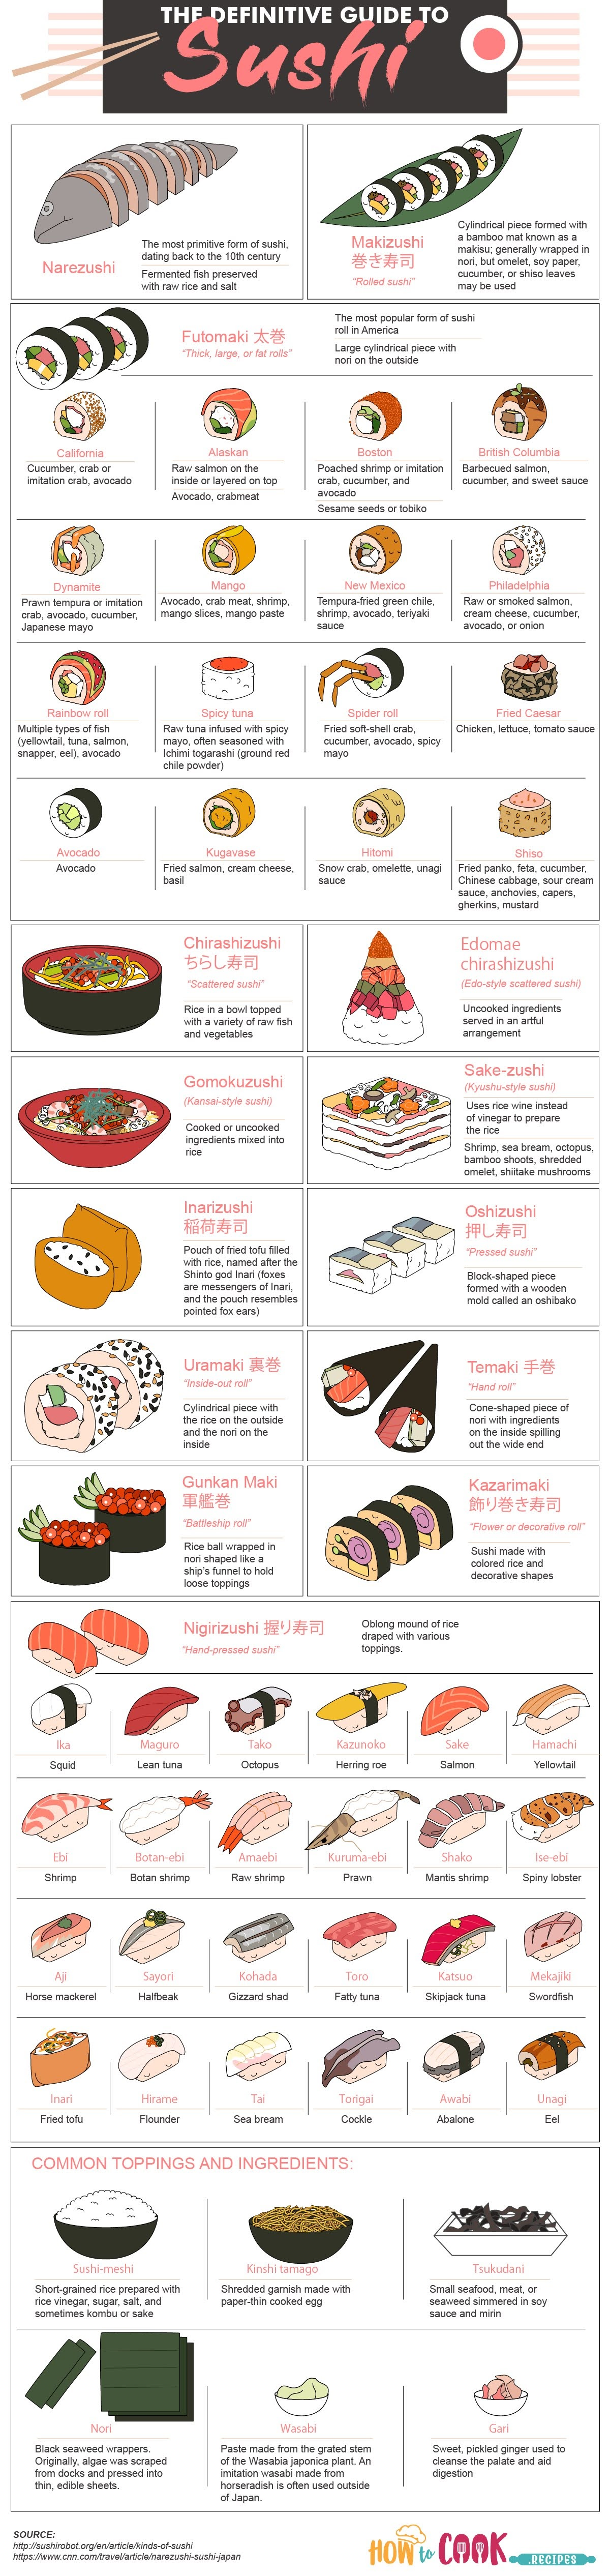 the-definitive-guide-to-sushi-infographic